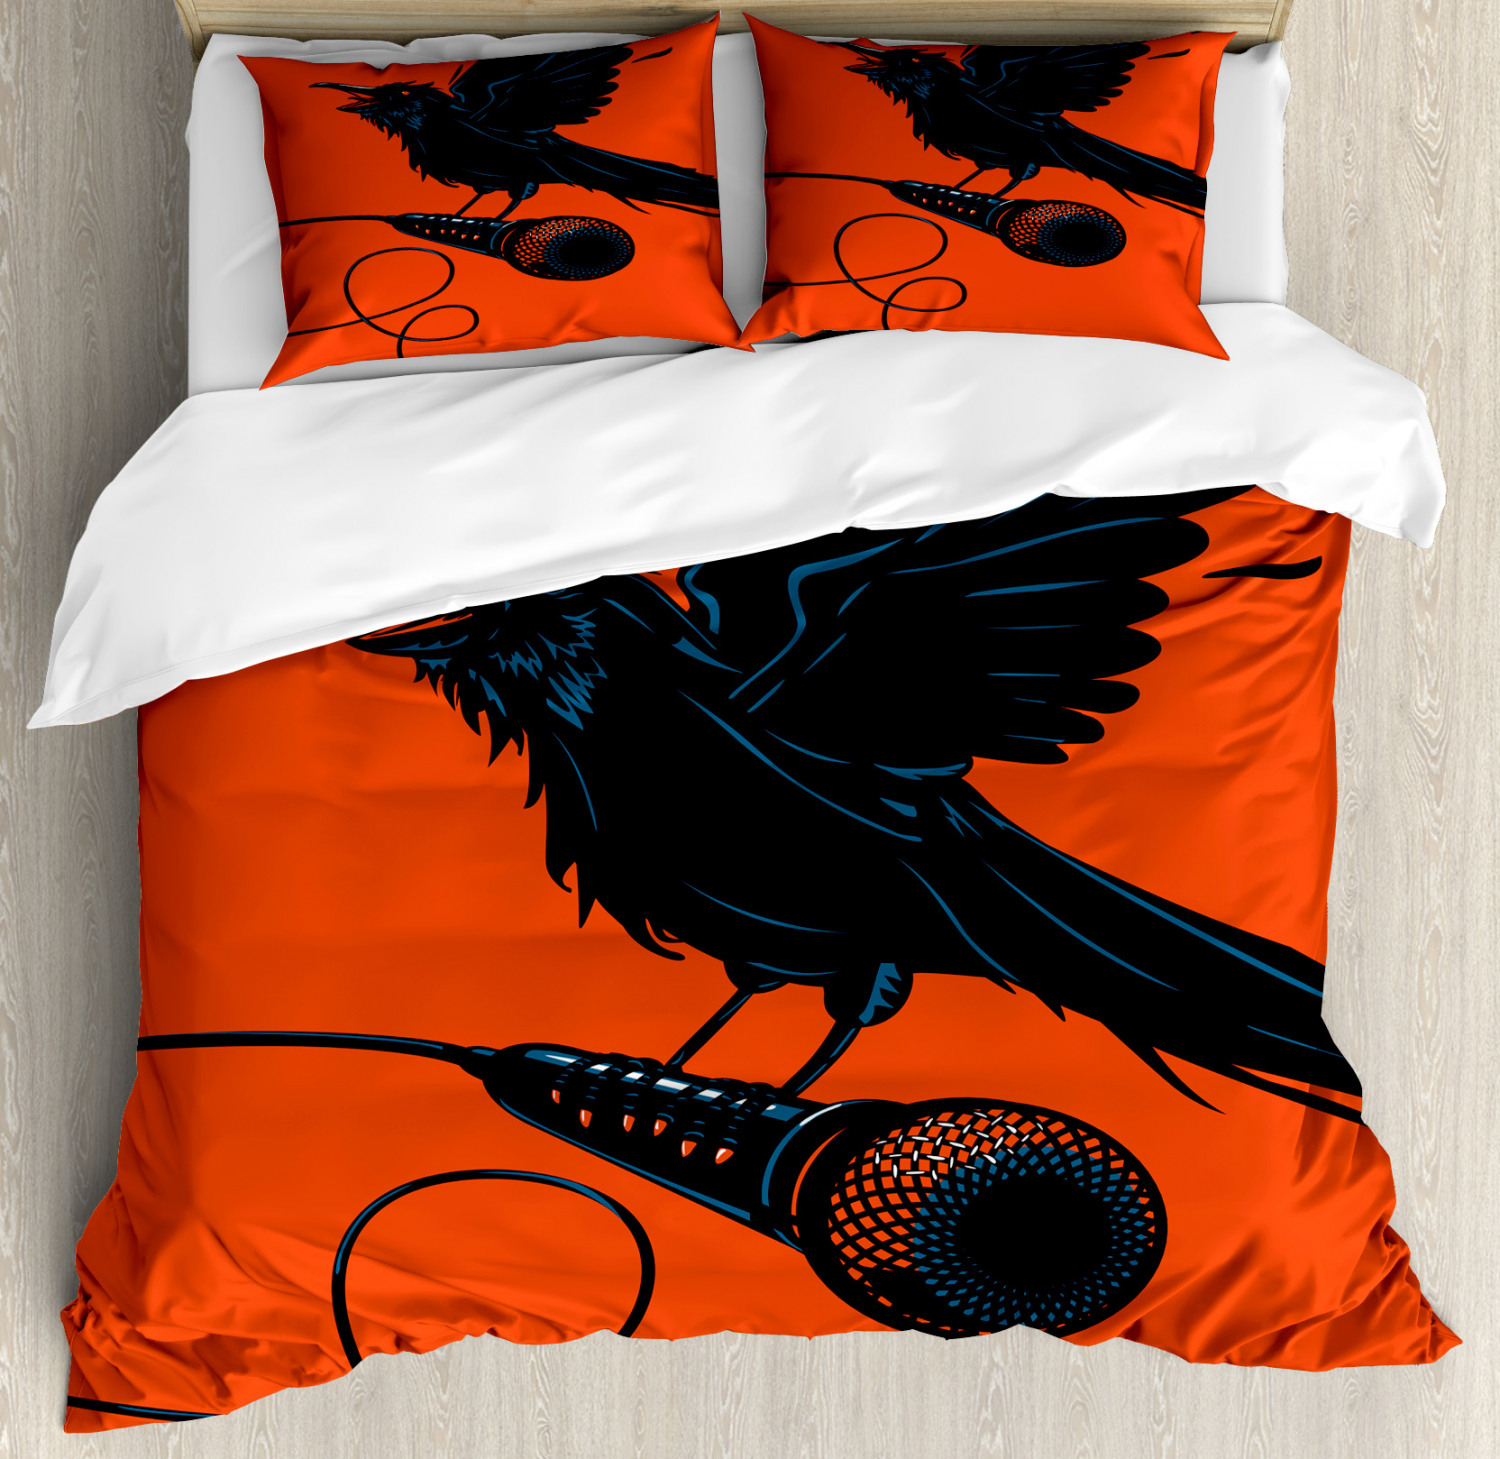 Indie Duvet Cover Set Raven Is Holding A Microphone Rock Music Theme Festival Party Gothic Singer Decorative Bedding Set With Pillow Shams Orange Black Blue By Ambesonne Walmart Com Walmart Com